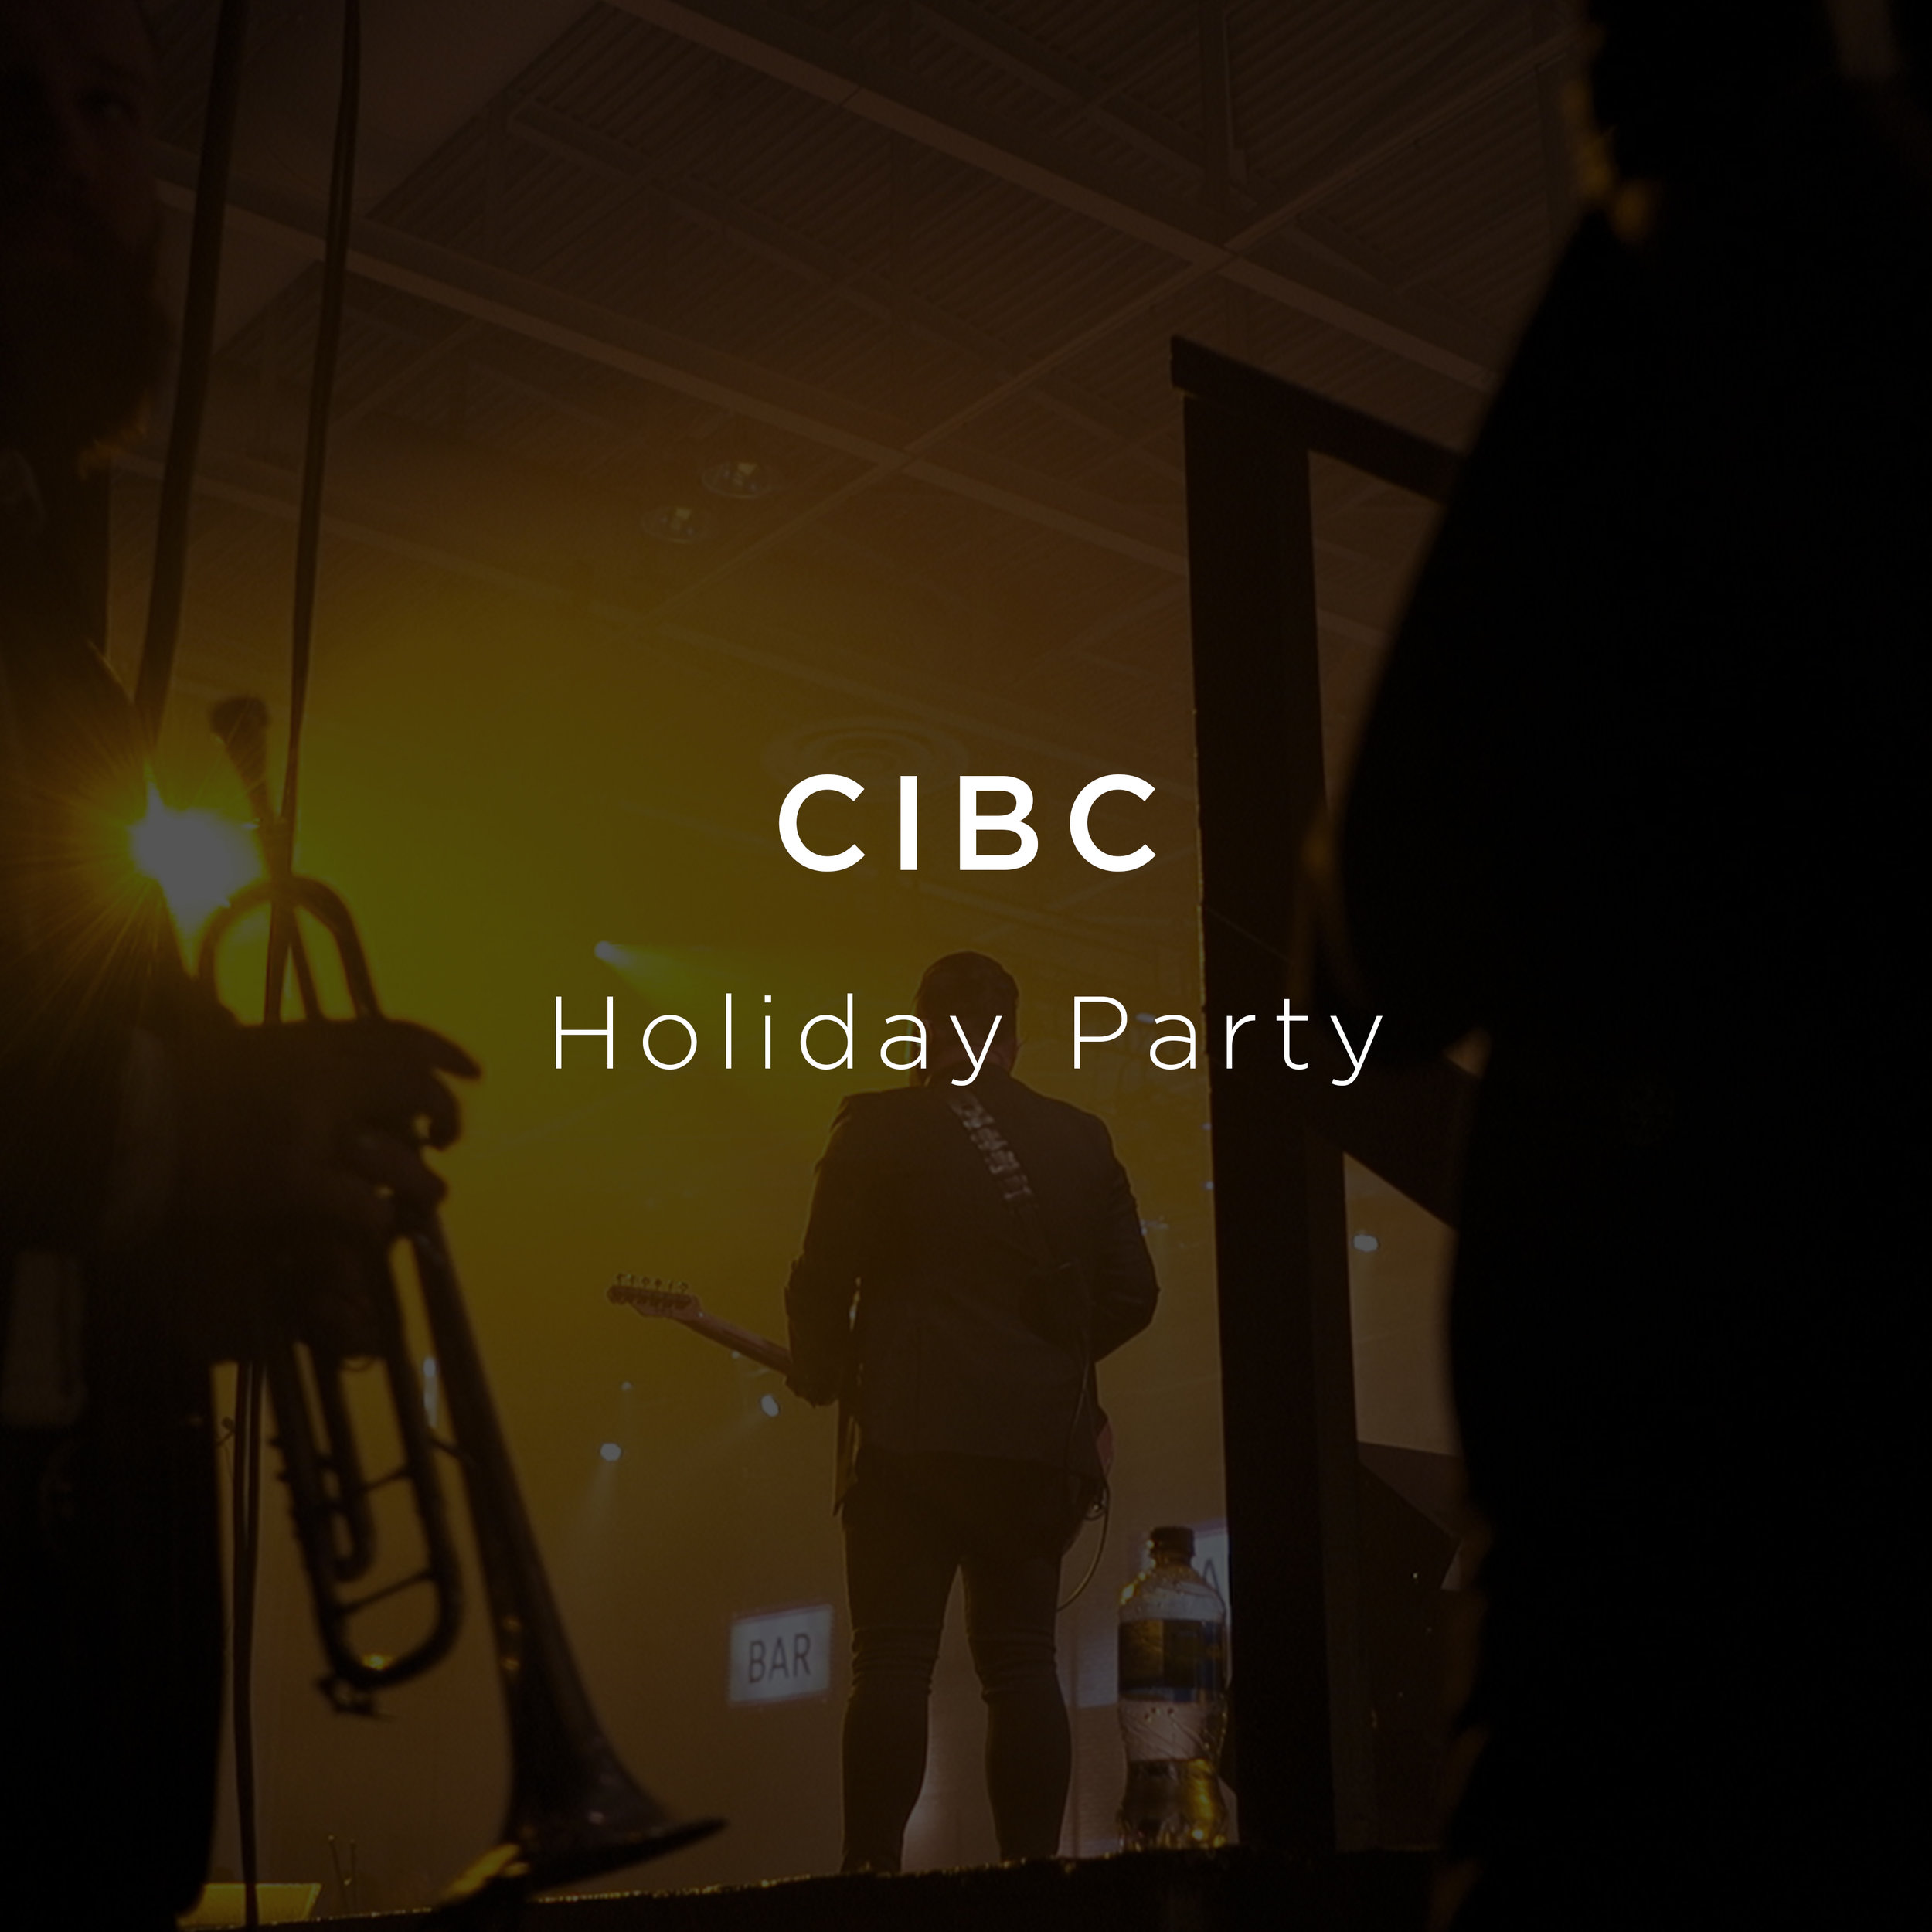 PROJECTS-CIBCholiday.jpg